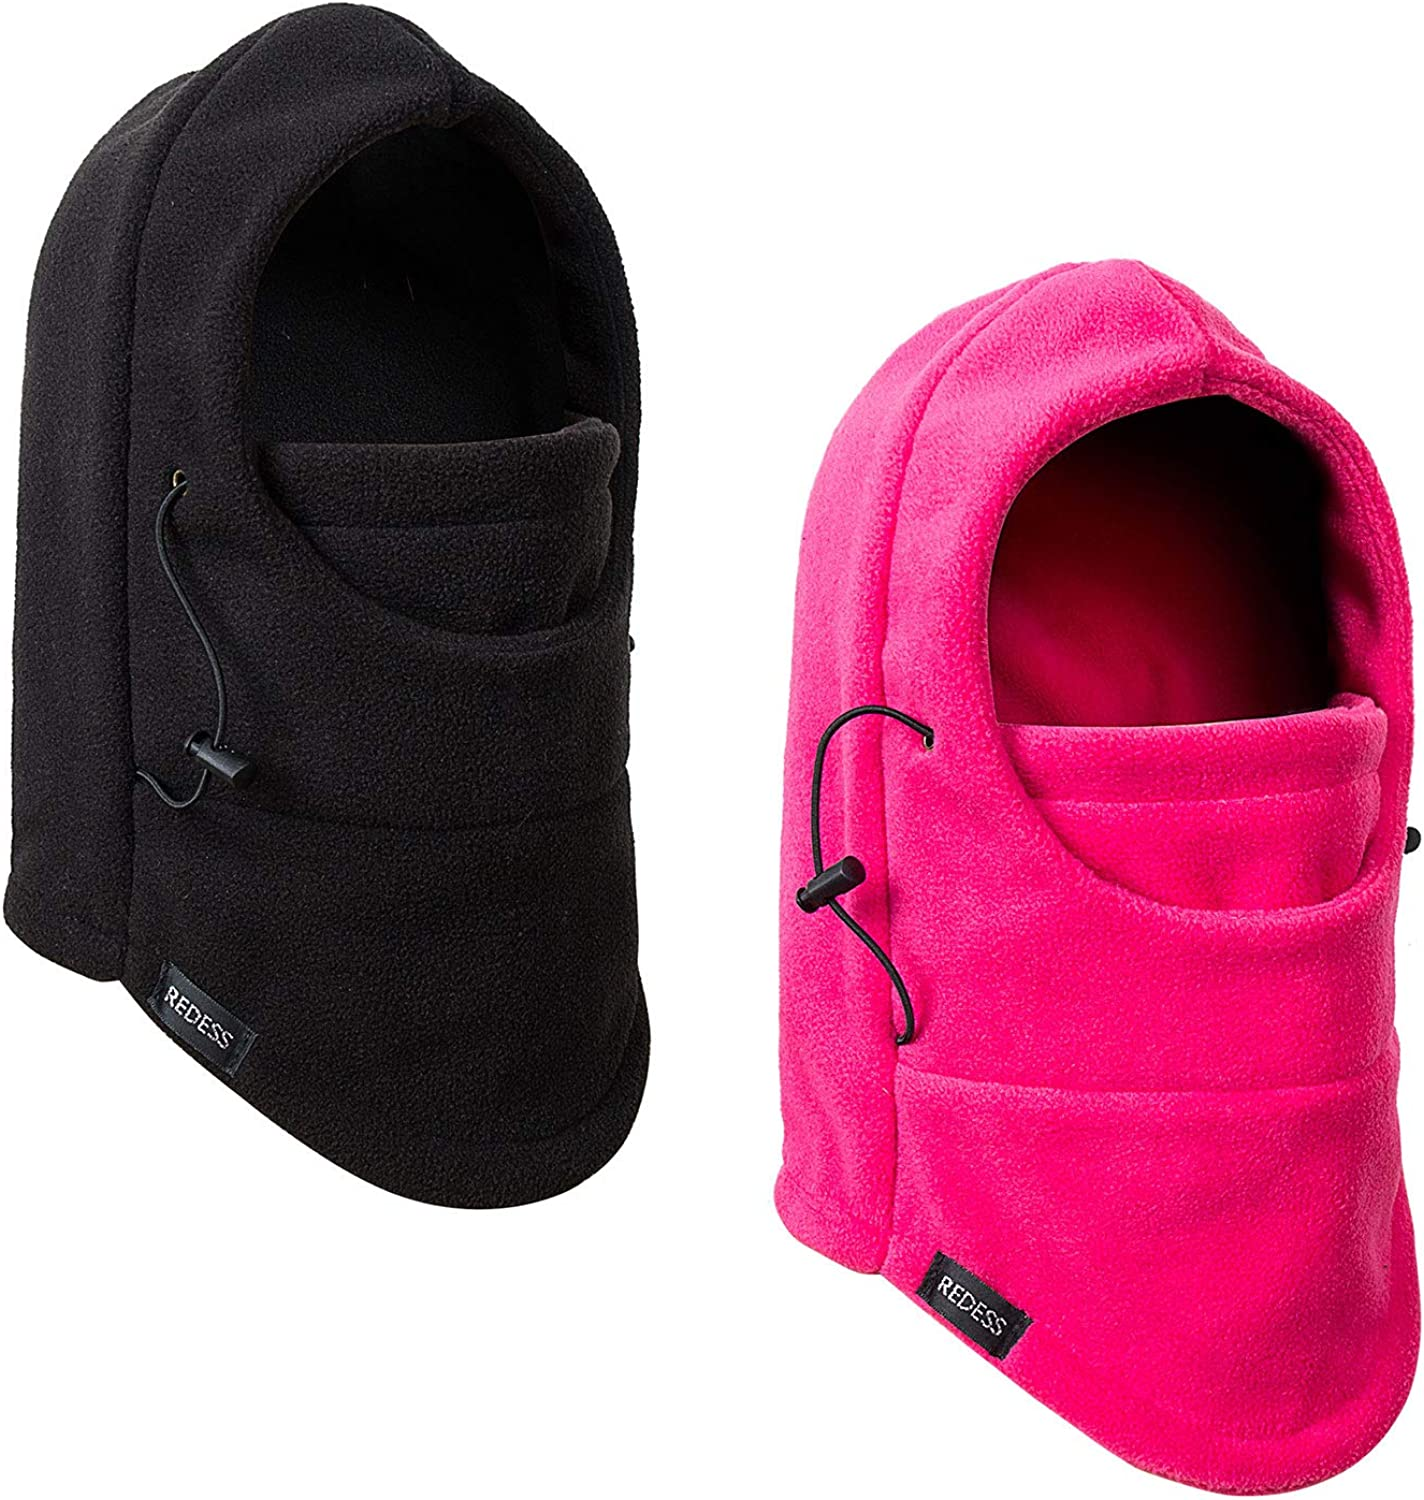 REDESS Kids Winter Windproof Hat, Unisex Children Heavyweight Balaclava, Ski Mask with Thick Warm Fleece Face Cover for Kids